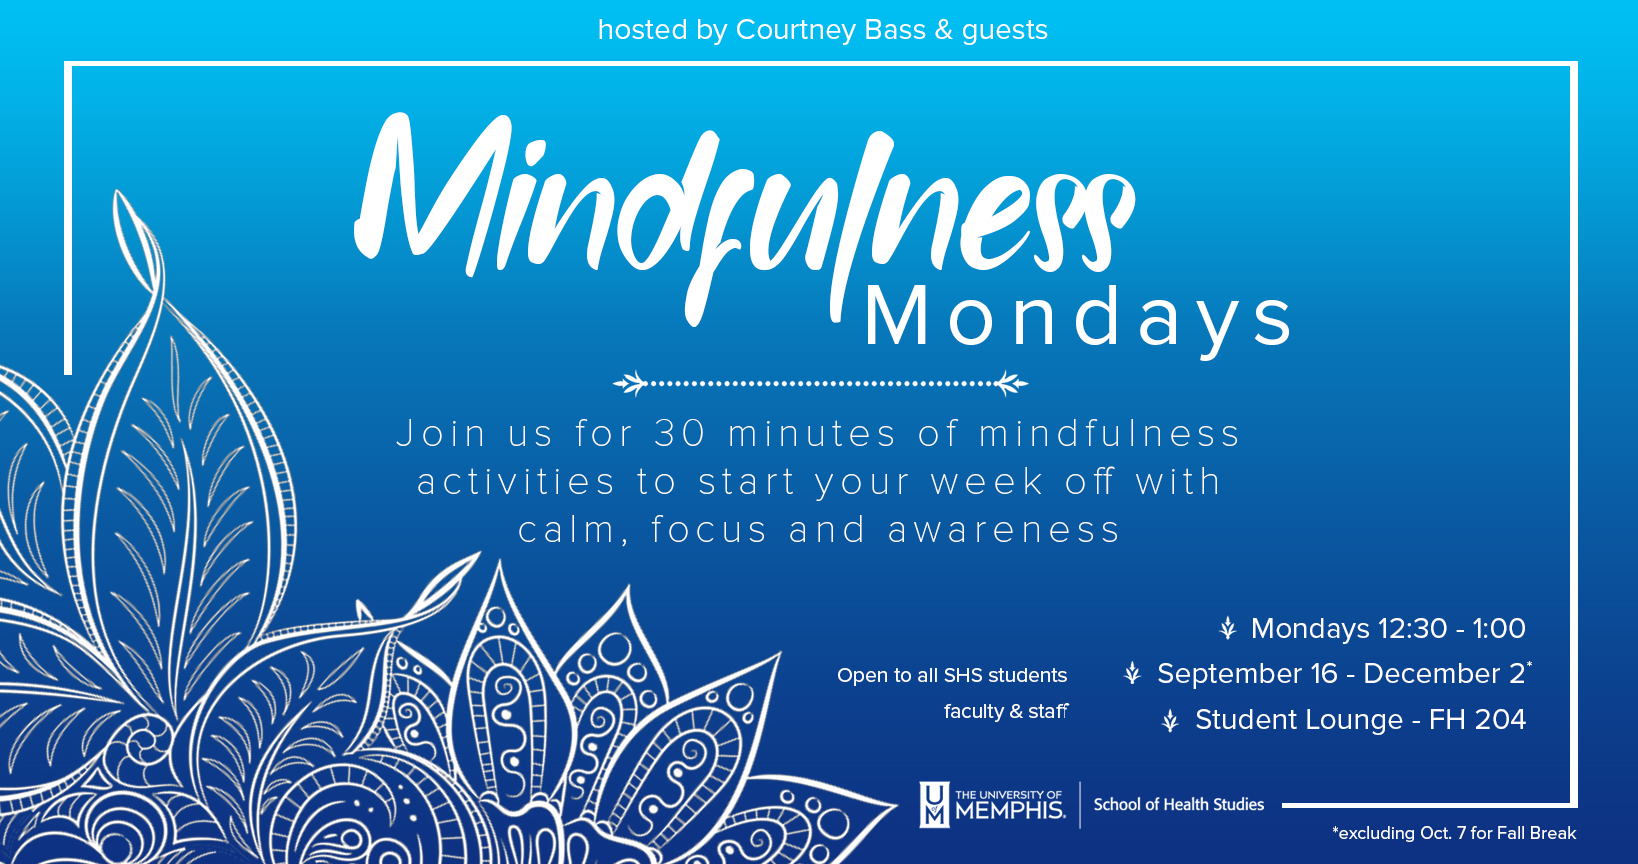 Mindfulness Mondays | Join us for 30 minutes of mindfulness activities to start your week off with calm, focus and awareness | Mondays 12:30-1:00 (Sept 16-Dec 2) | Student Lounge FH204 | Open to all students, faculty & staff